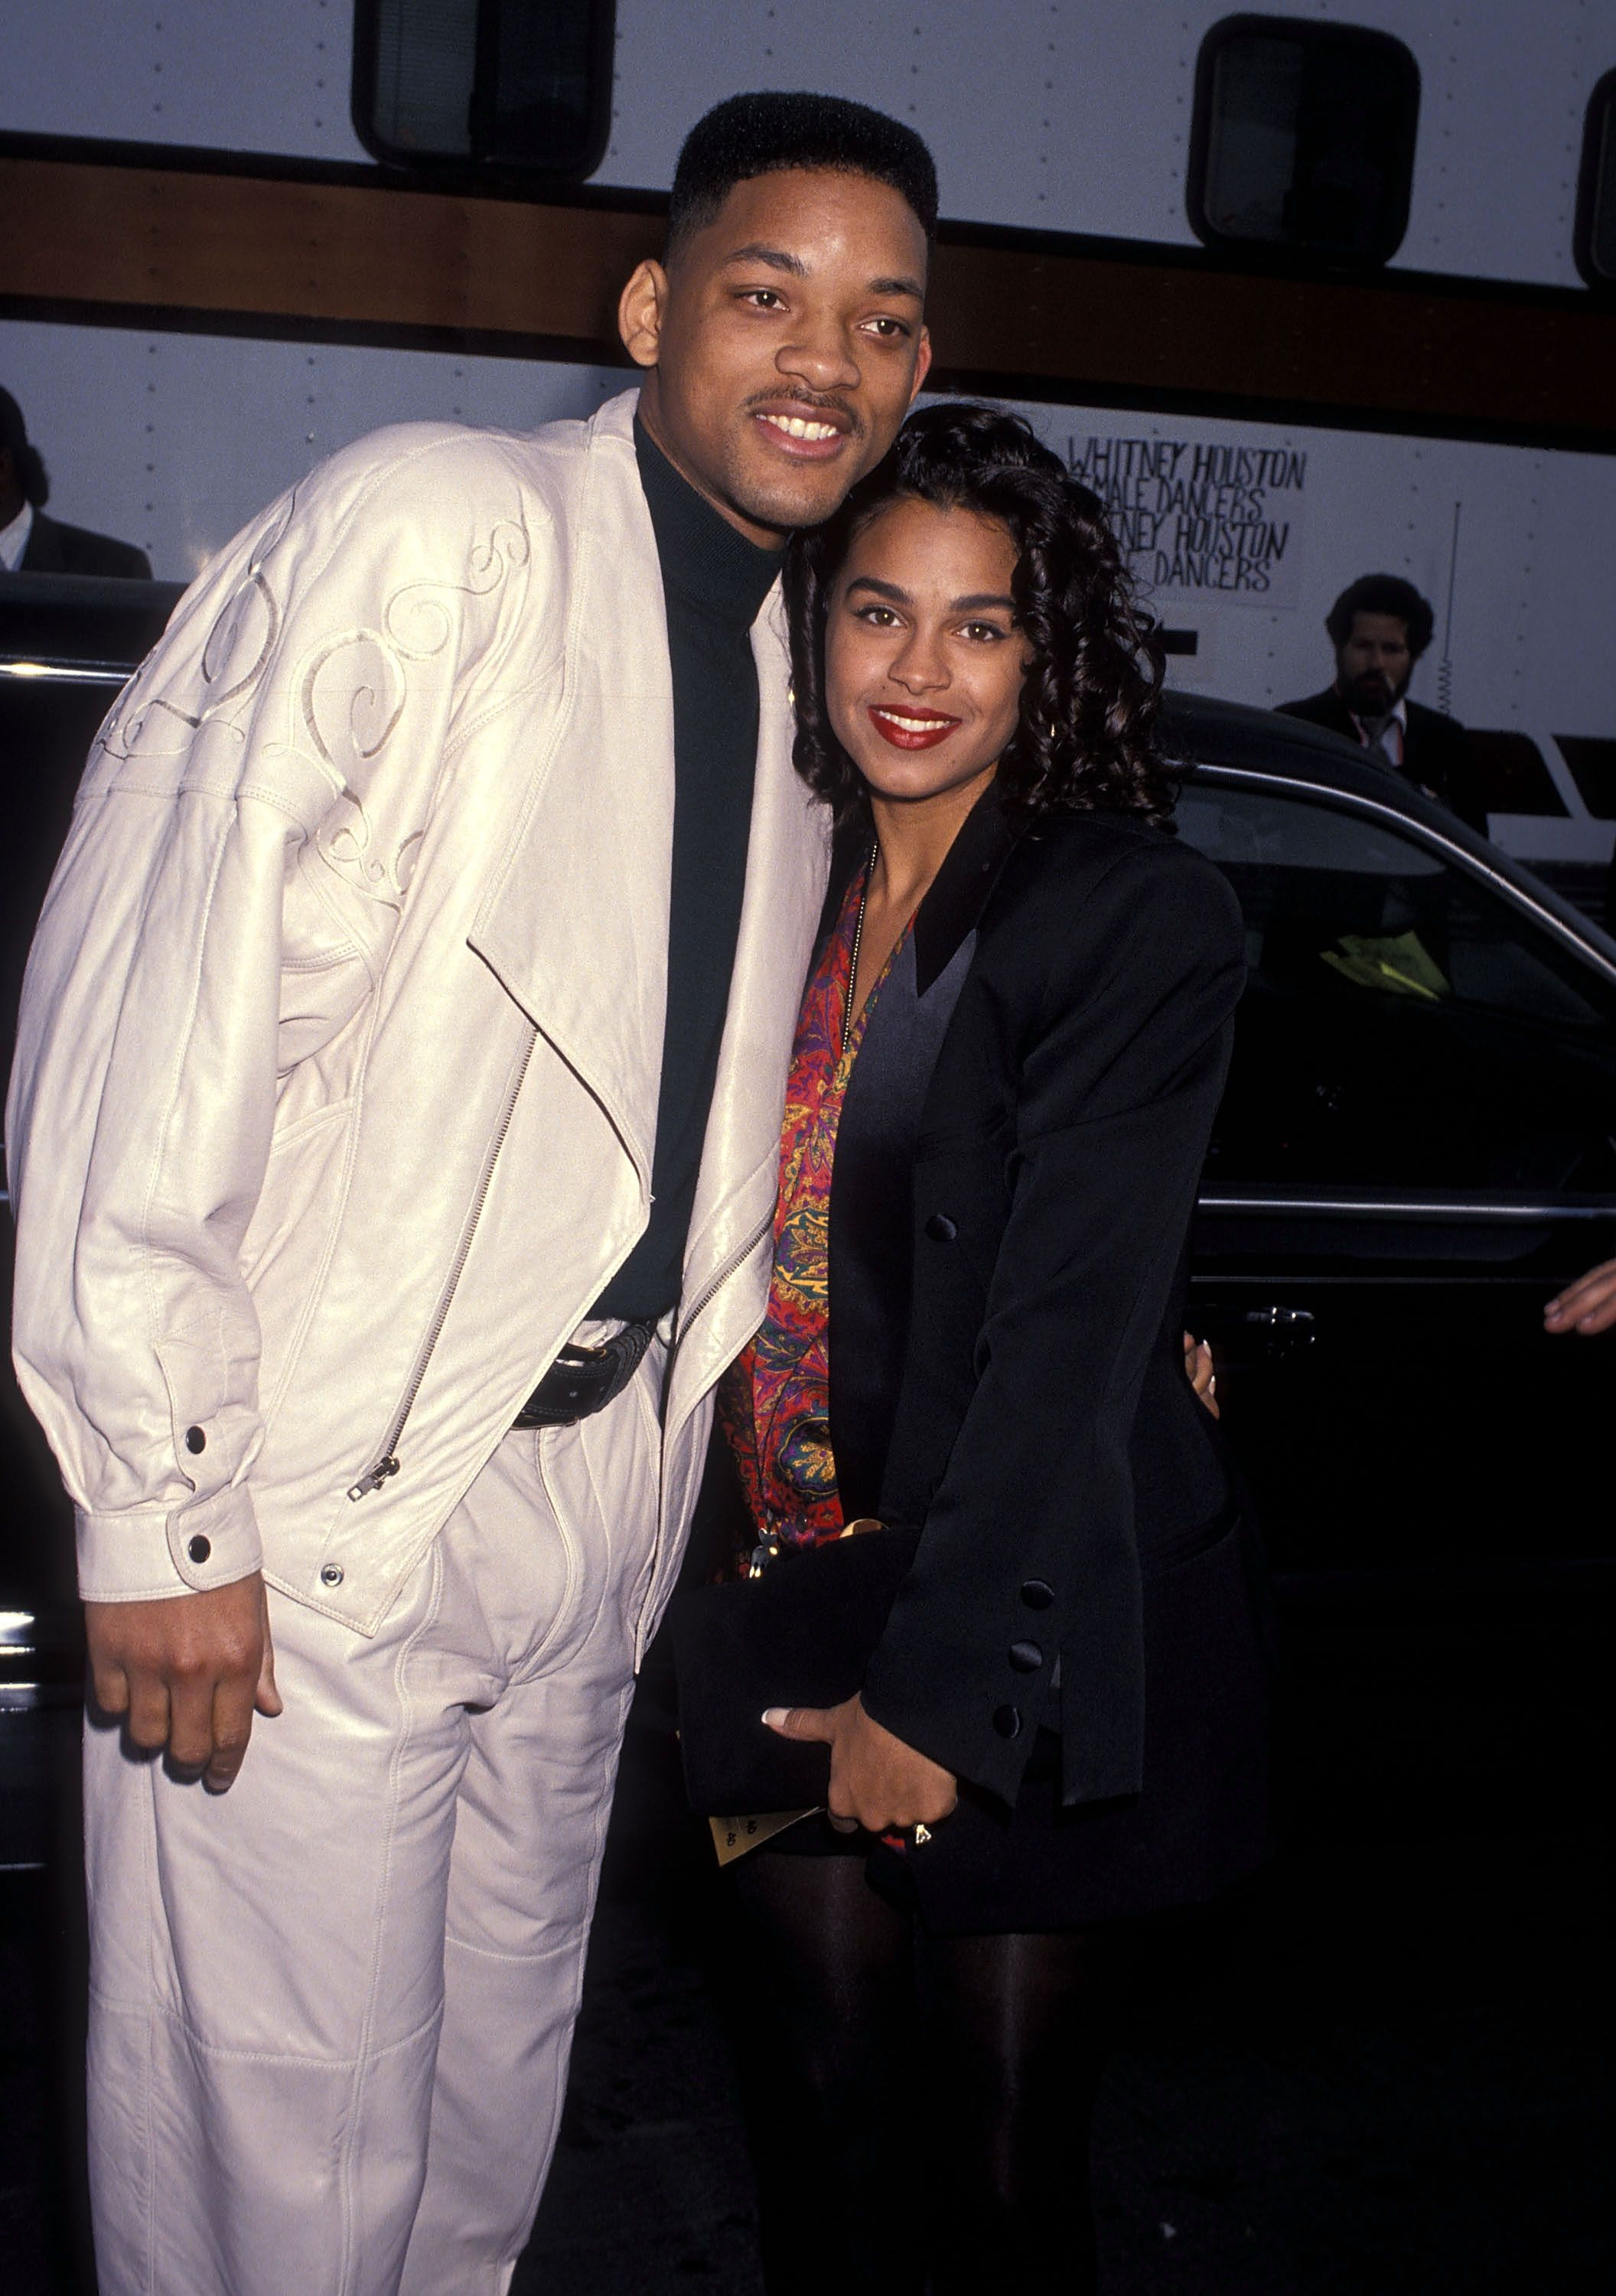 Will Smith andSheree Zampino atthe 19th Annual American Music Awards on January 27, 1992,in Los Angeles, California   Photo:Ron Galella, Ltd./Ron Galella Collection/Getty Images